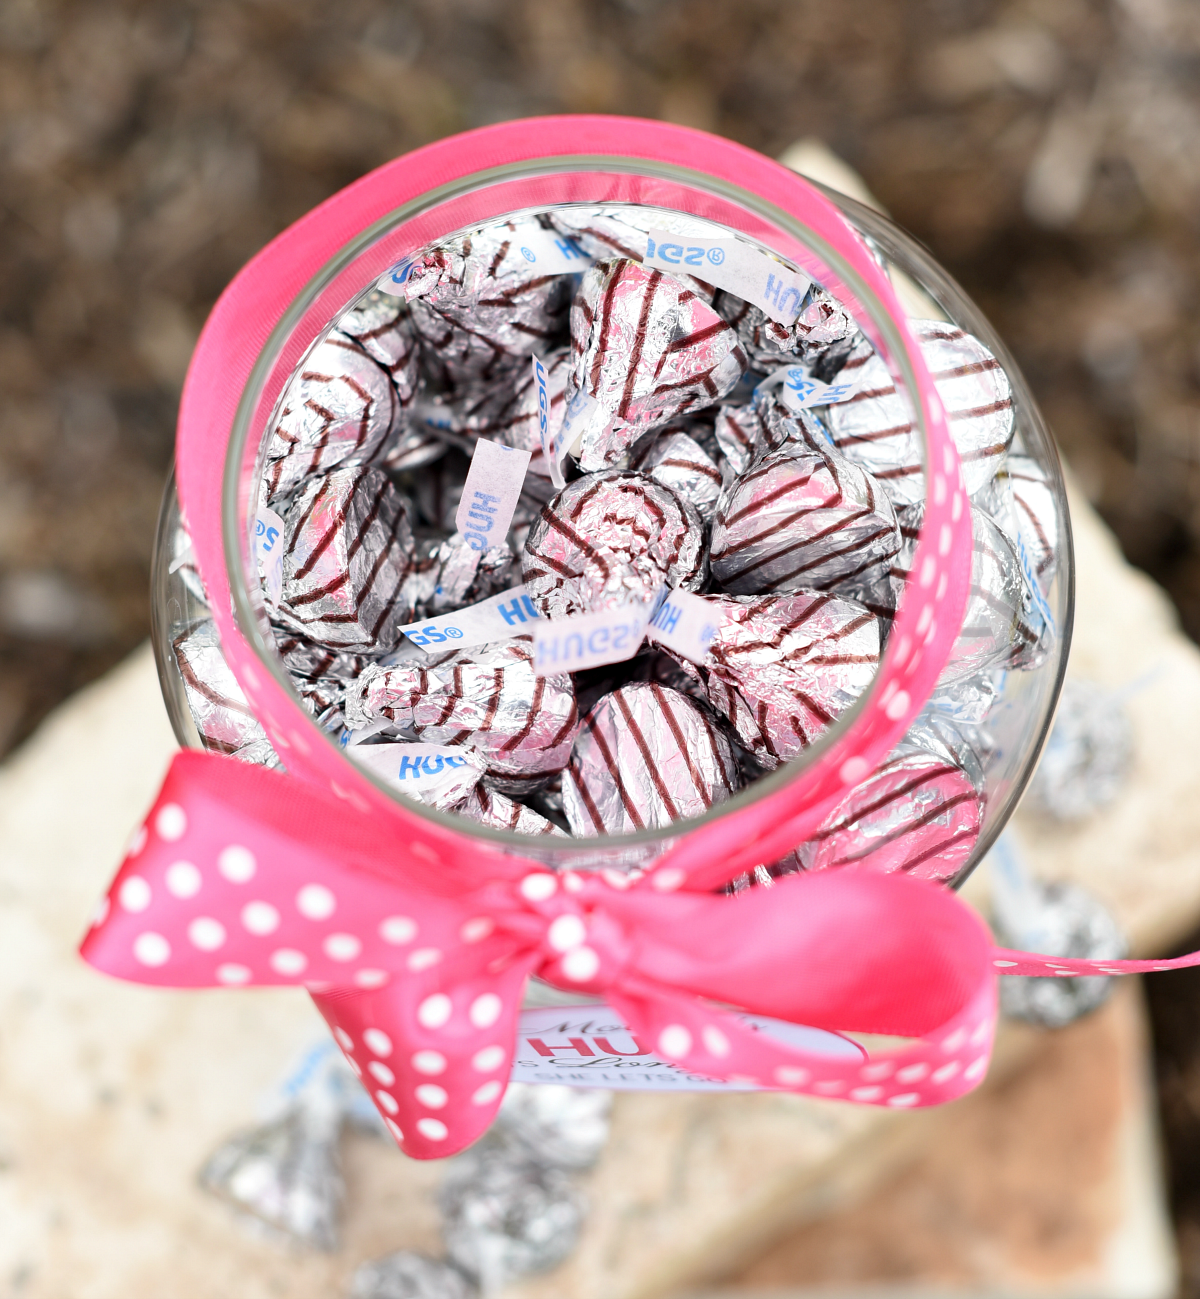 Sentimental Gift Ideas for Mother's Day